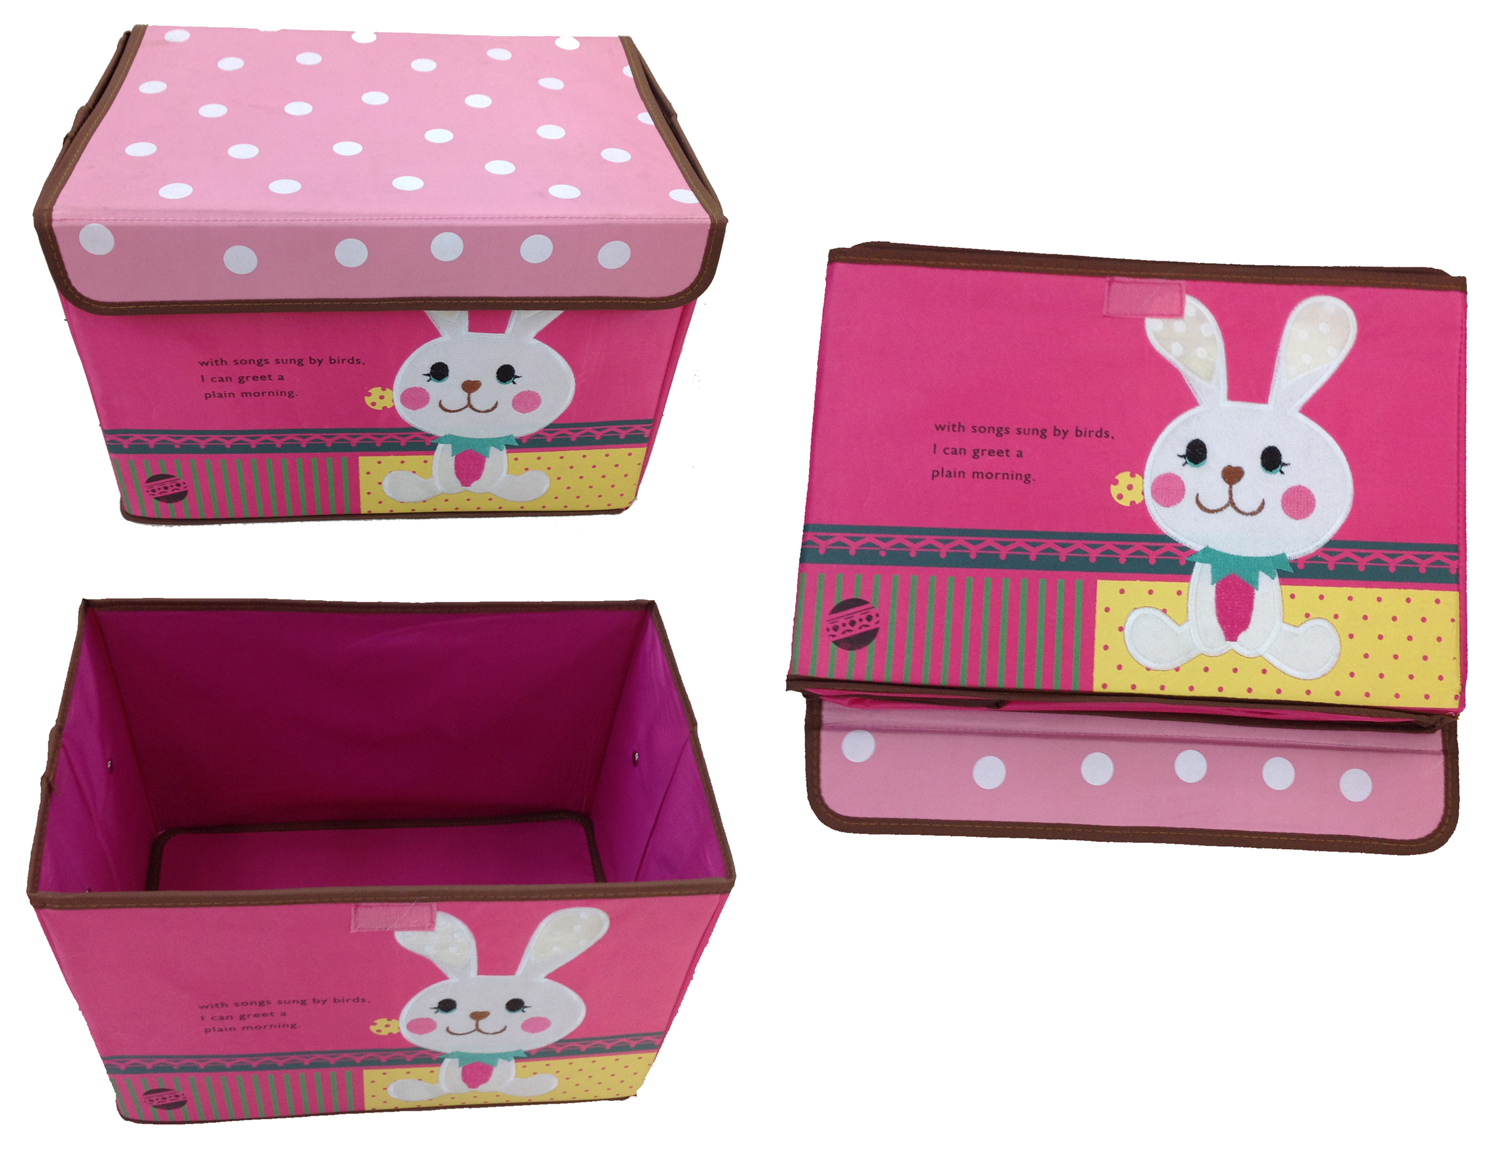 spielzeugbox hase gelb aufbewahrungsbox spielzeugkiste aufbewahrung kinderm bel ebay. Black Bedroom Furniture Sets. Home Design Ideas